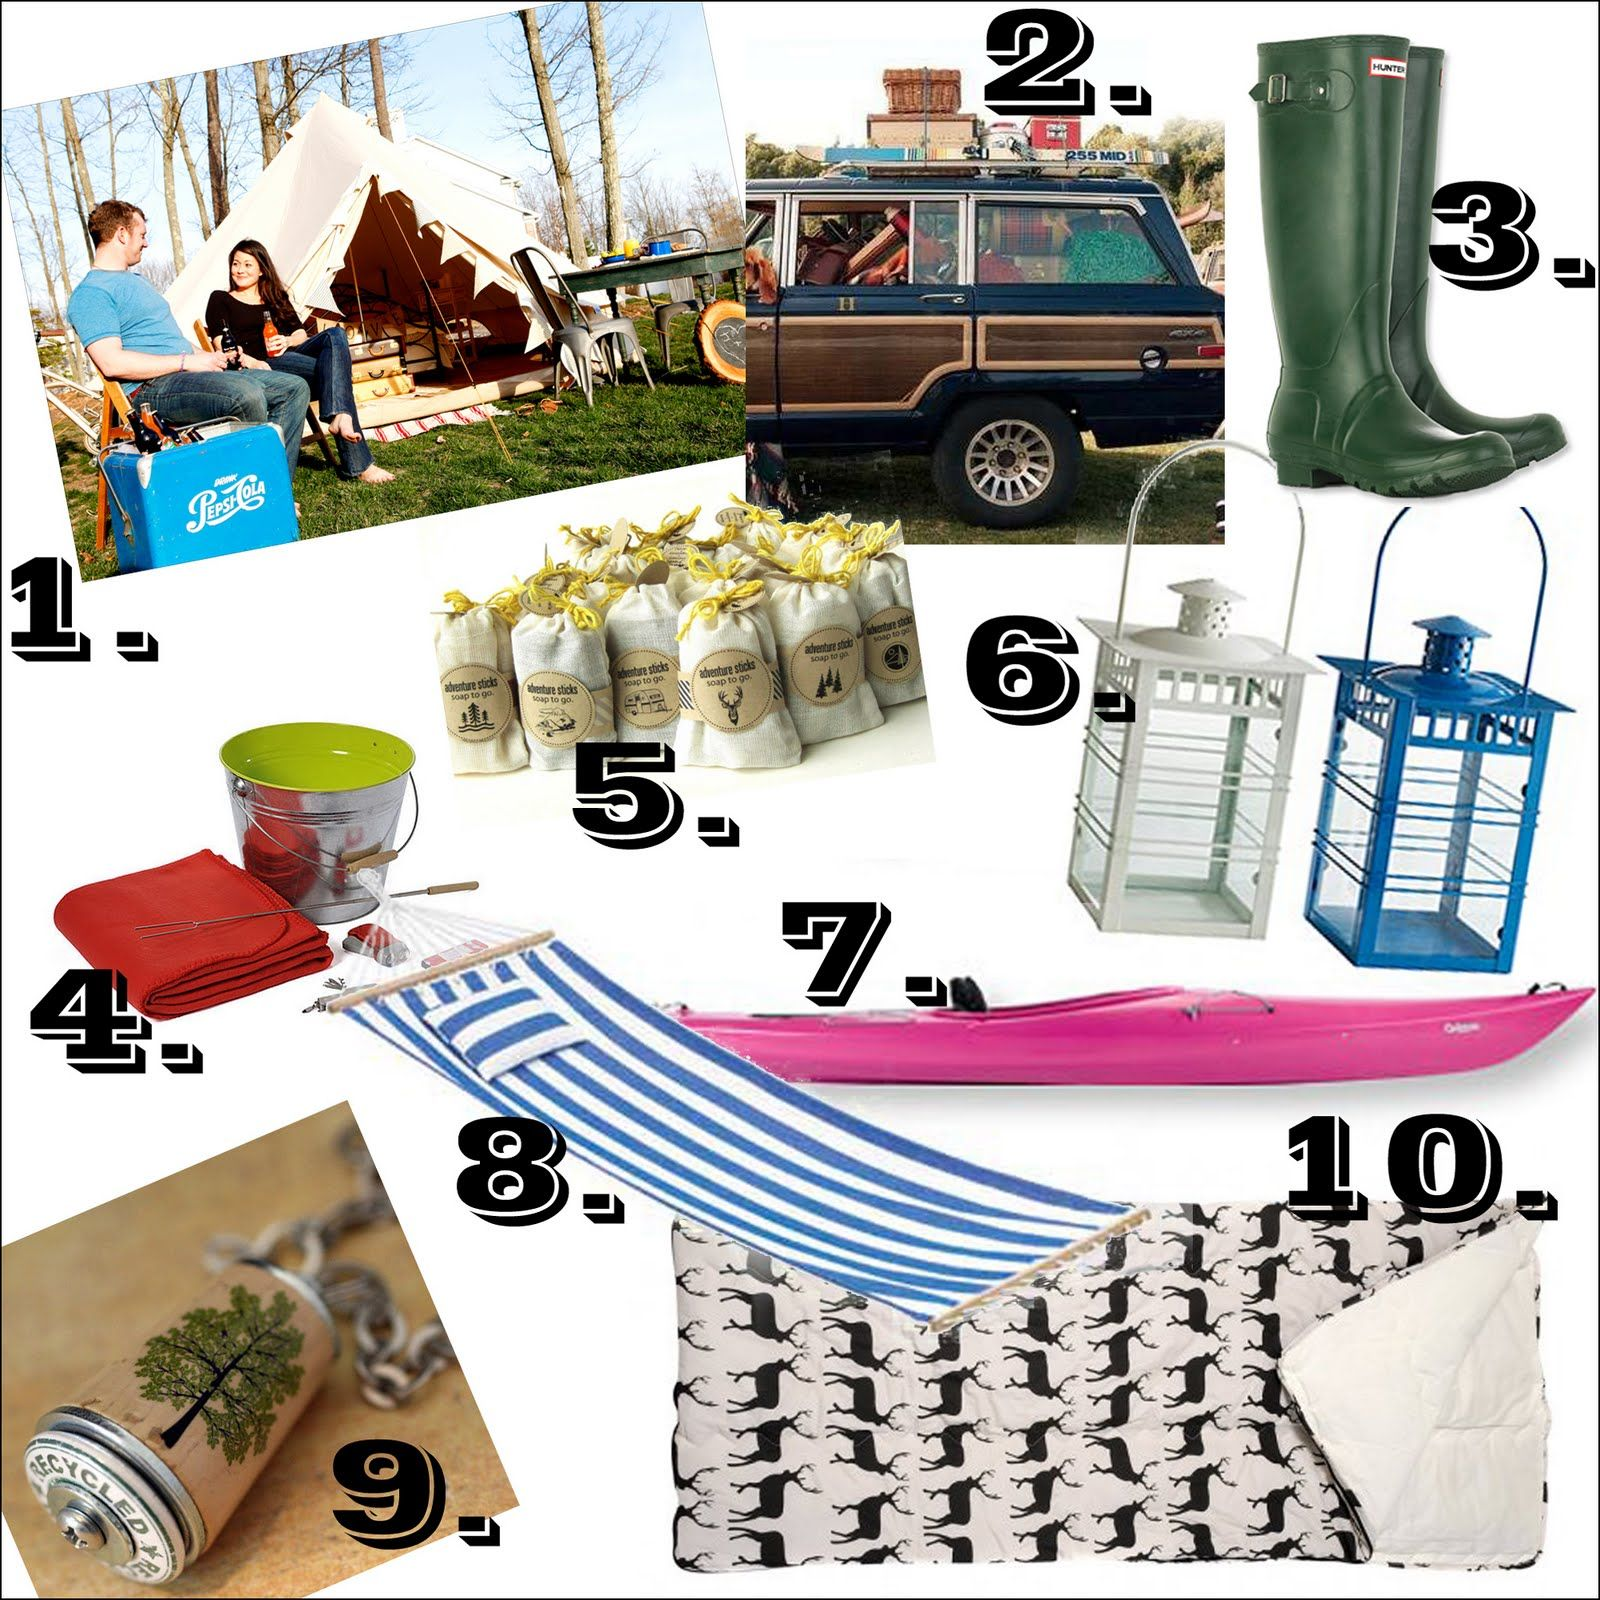 Some must haves for your next glamping adventure